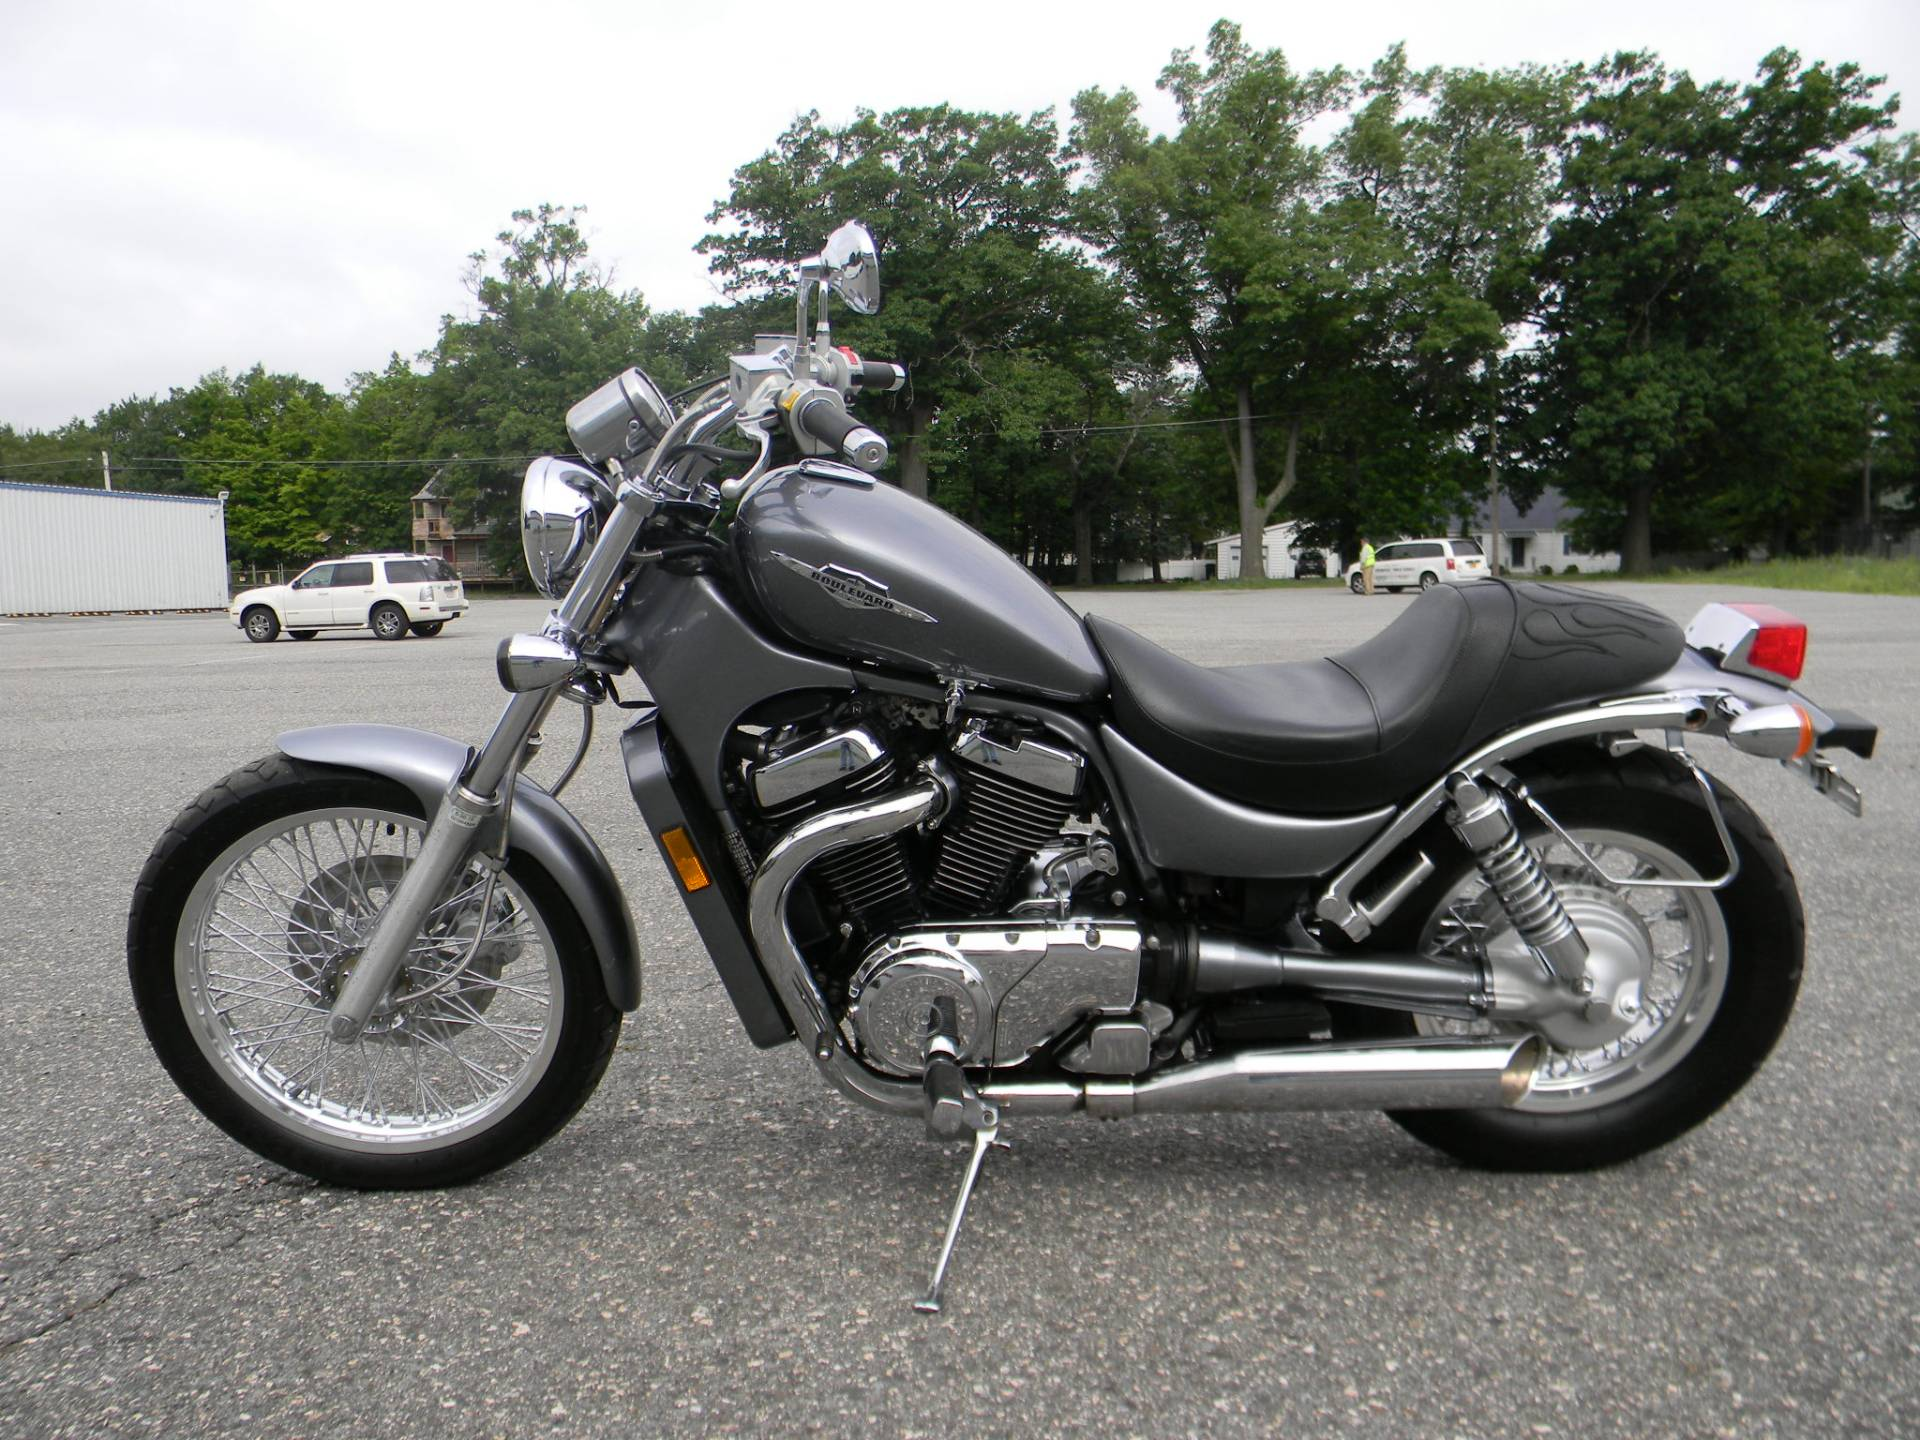 2005 Suzuki Boulevard S50 in Springfield, Massachusetts - Photo 6